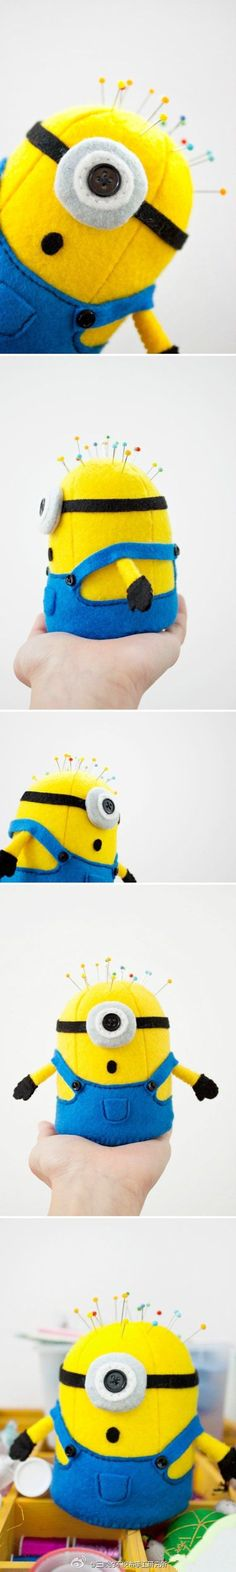 Minion pincushion! @Katie Hrubec Hrubec Hrubec Lee: